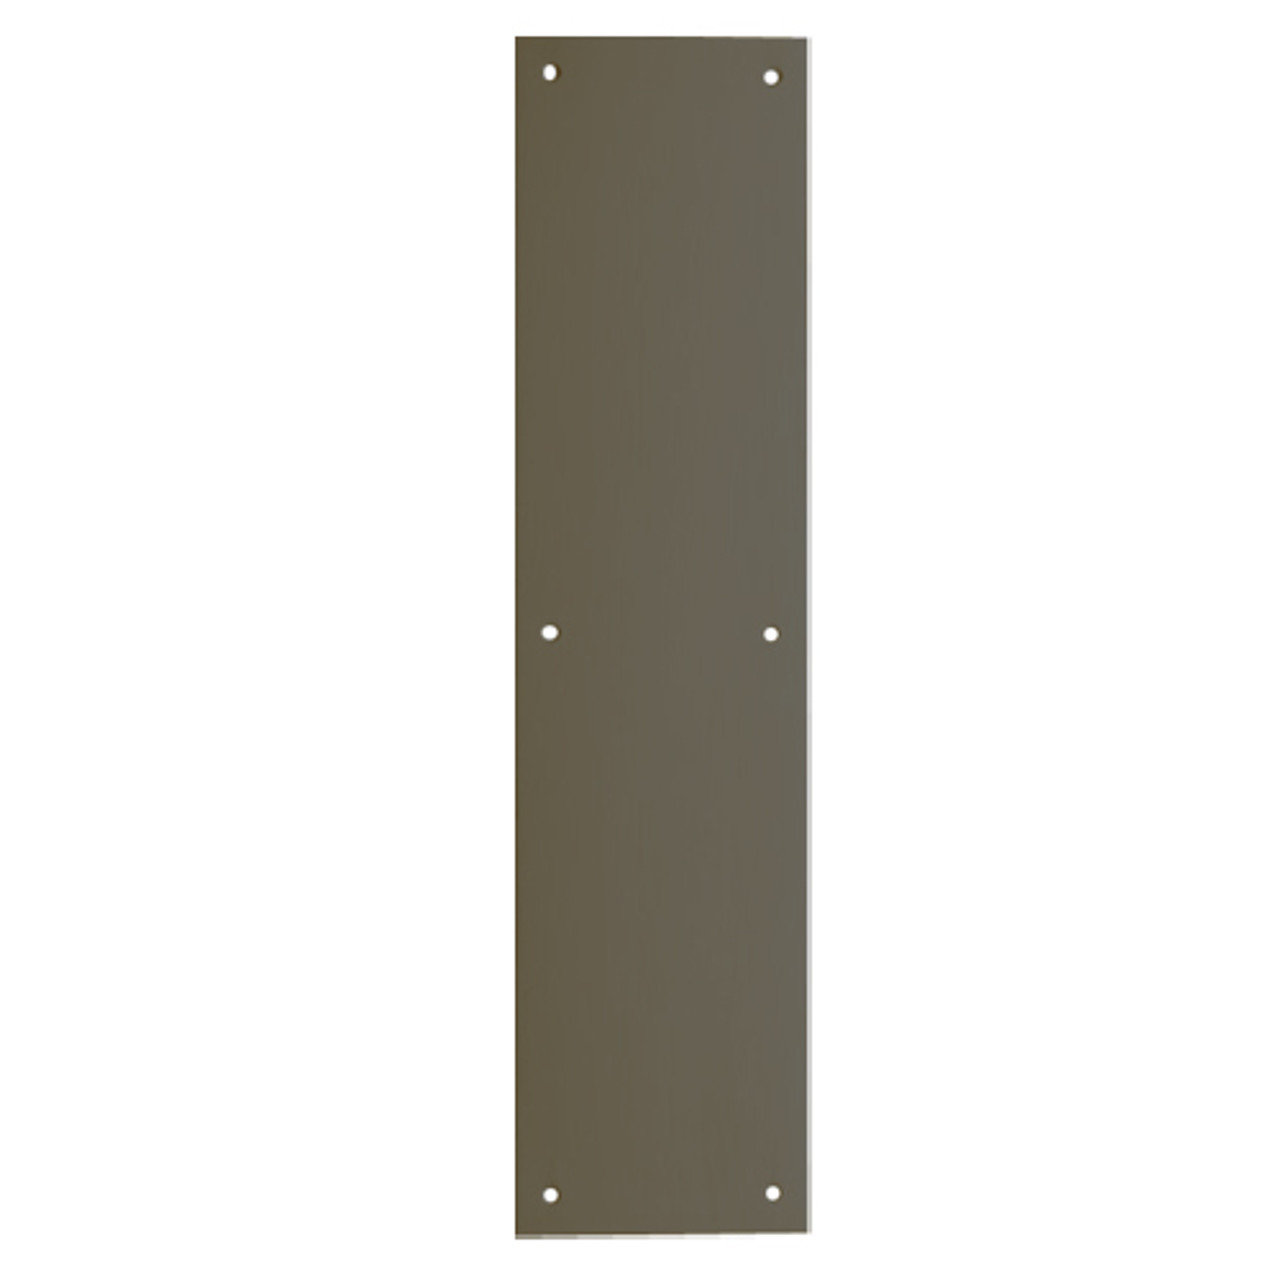 8200-US10B-6x16 IVES Architectural Door Trim 6x16 Inch Push Plate in Oil Rubbed Bronze